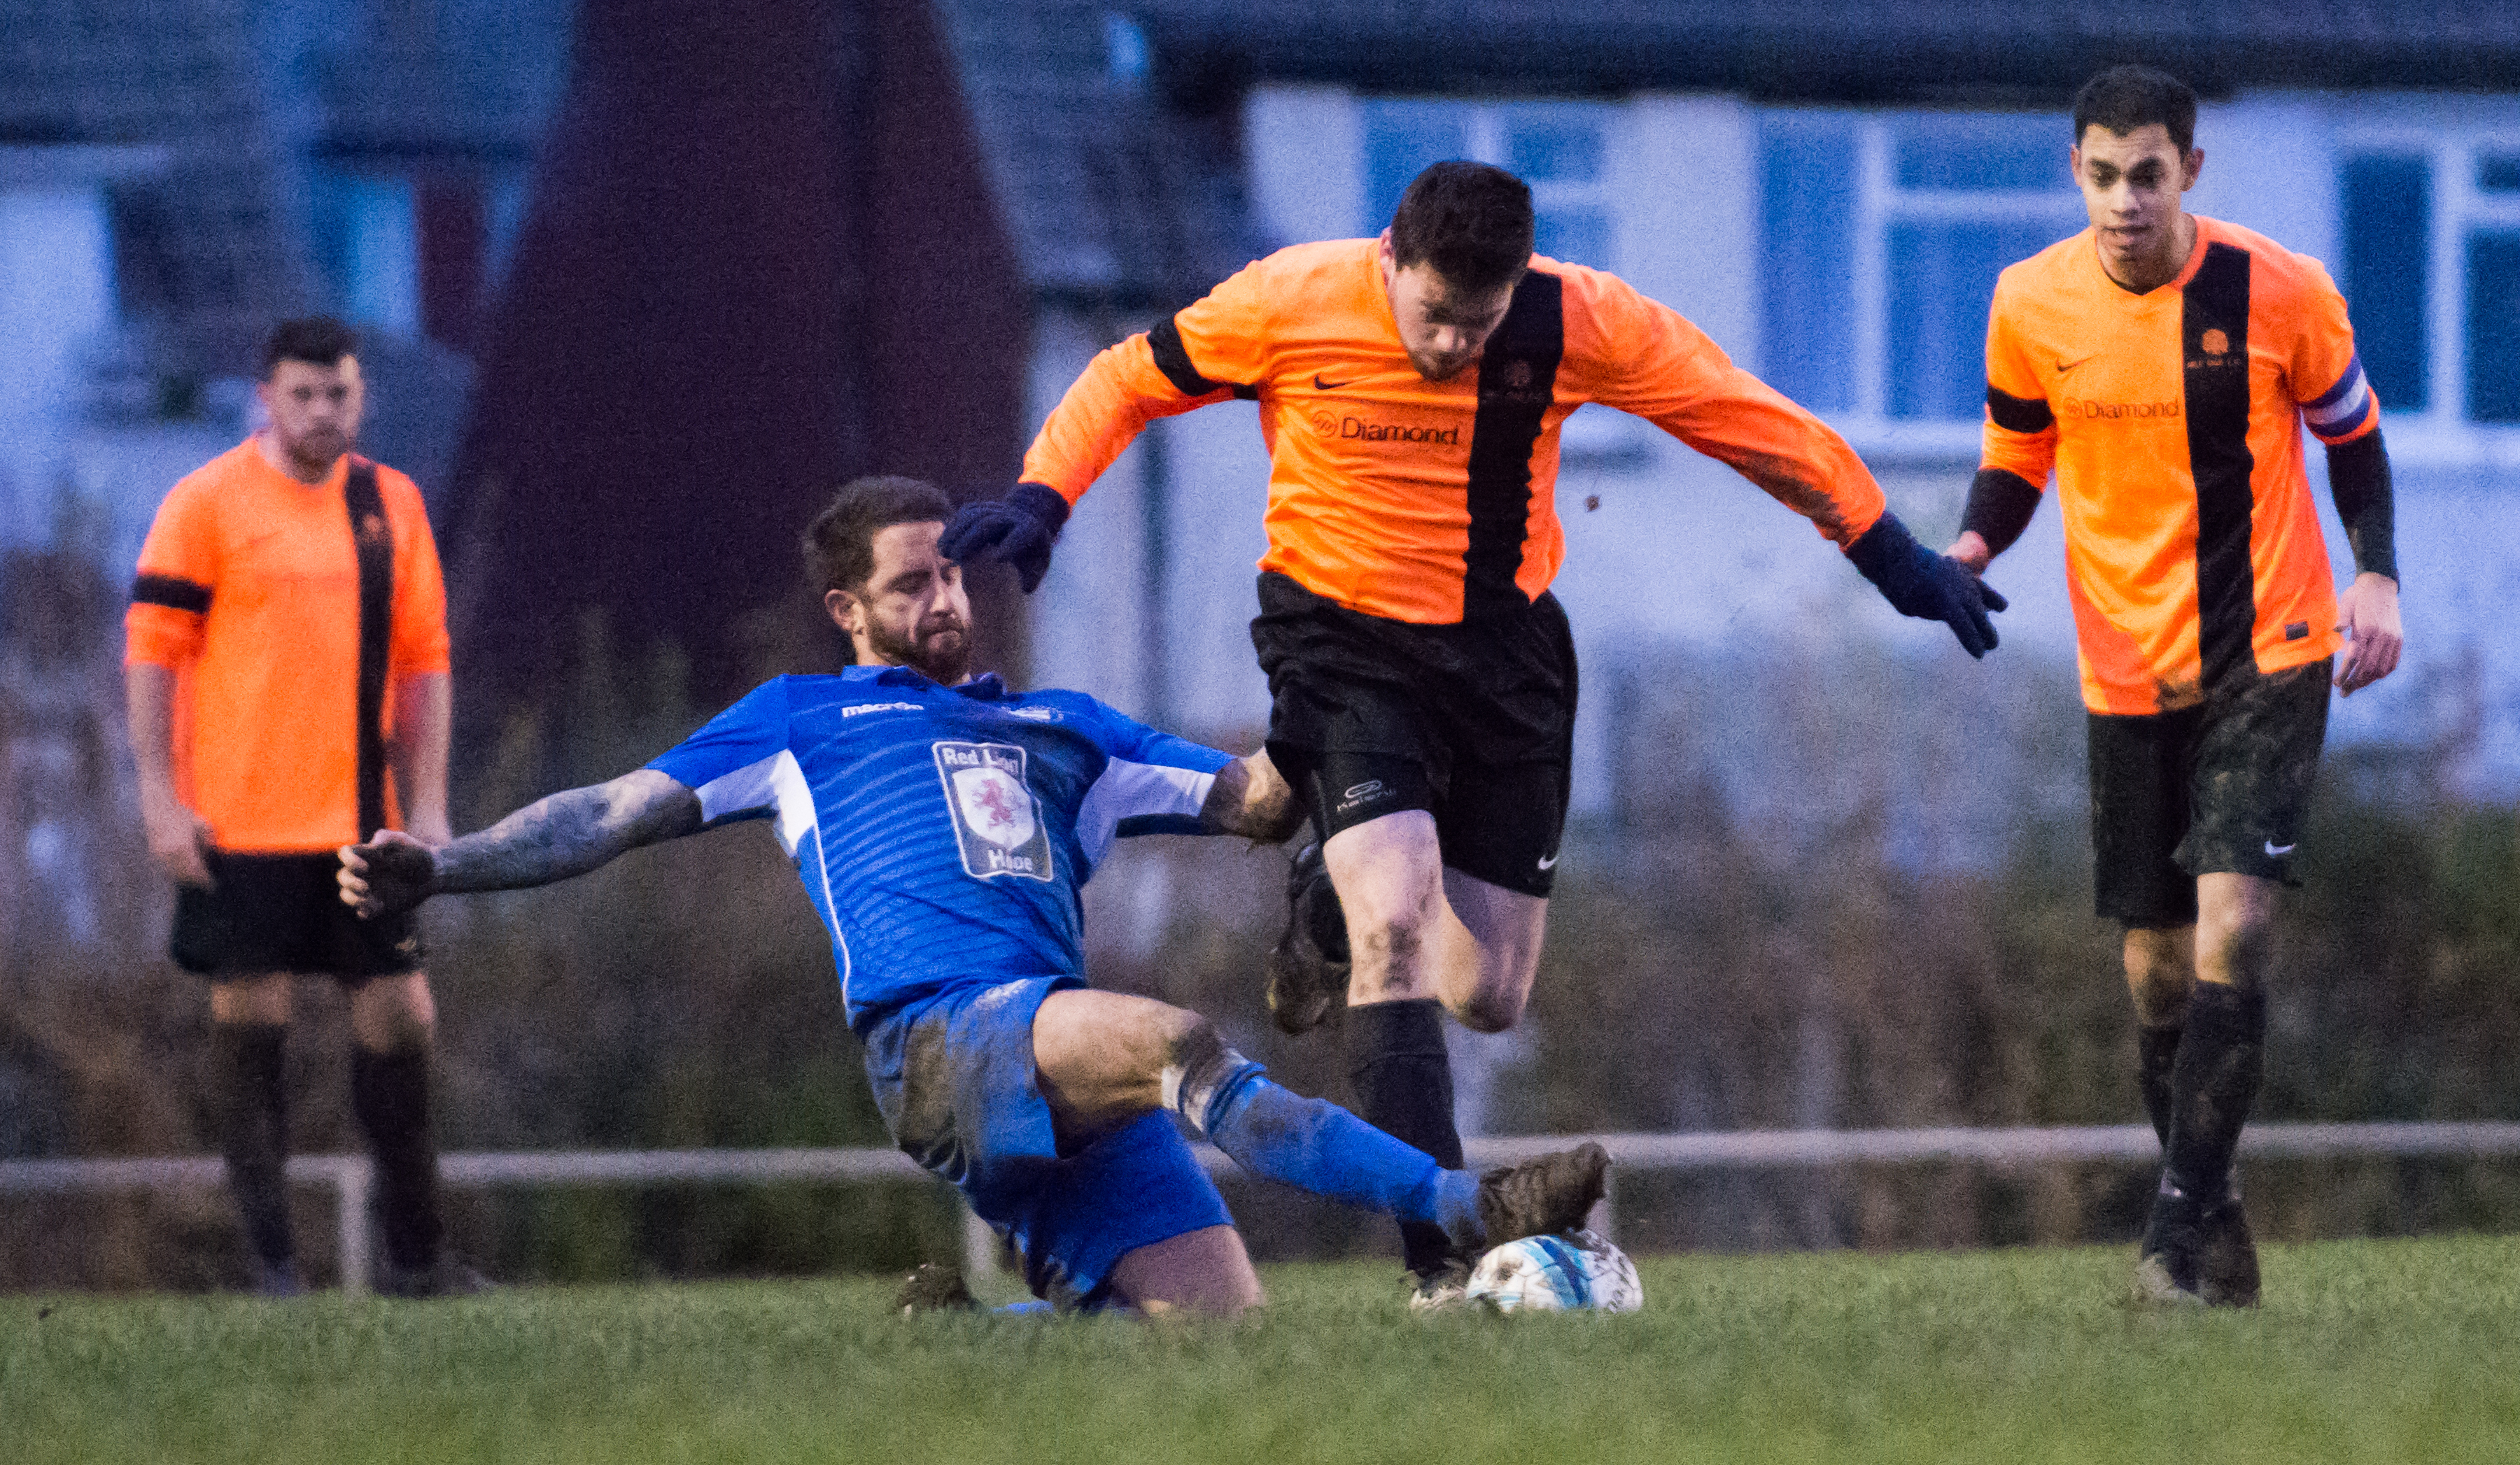 Mile Oak Res vs Sidley United 09.12.17 44